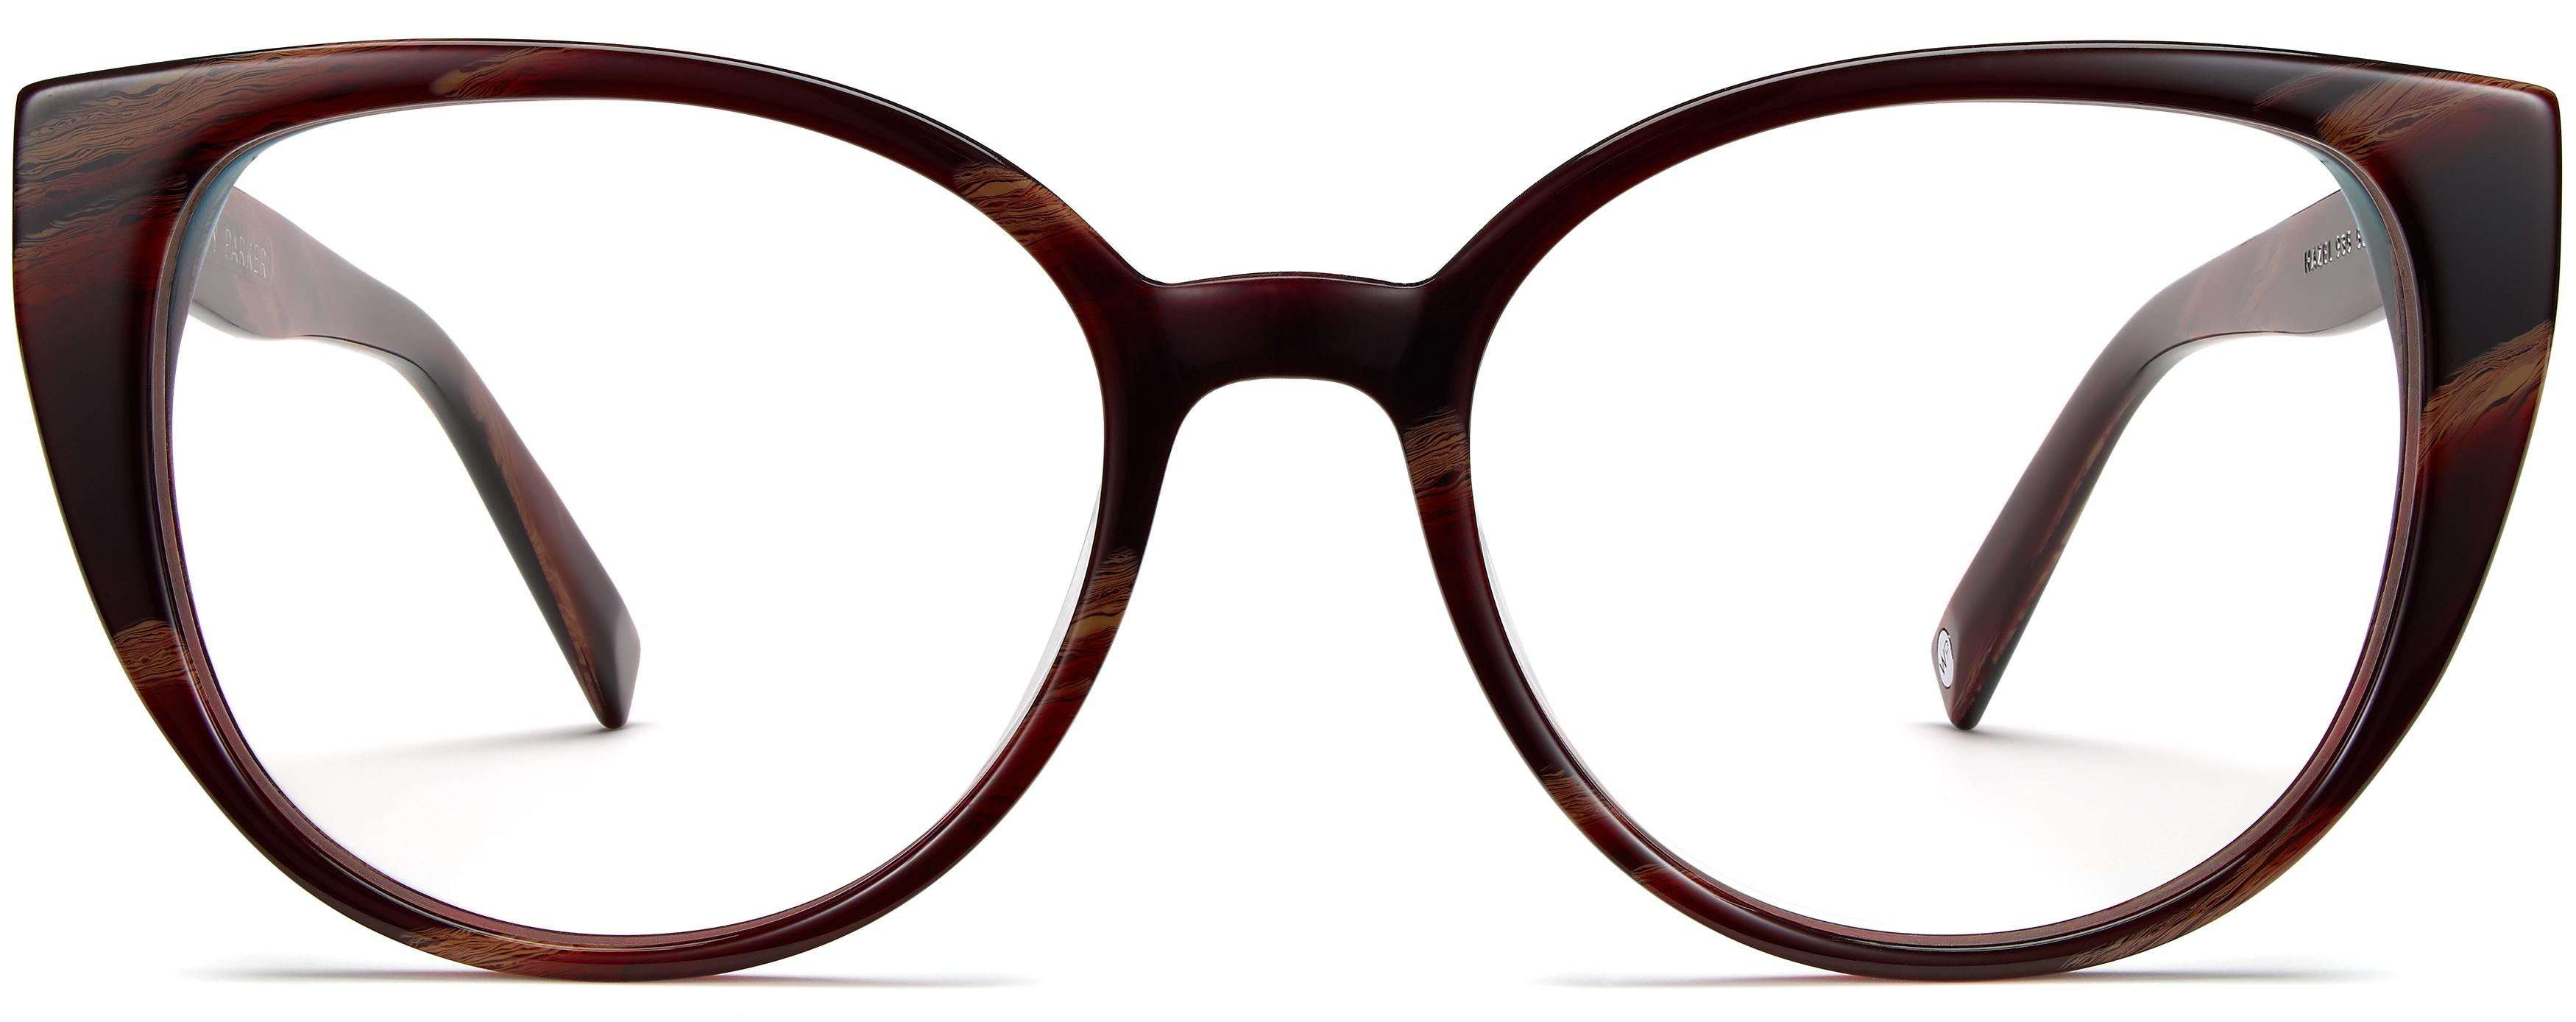 Cheap Glasses Women S Eyeglasses Warby Parker